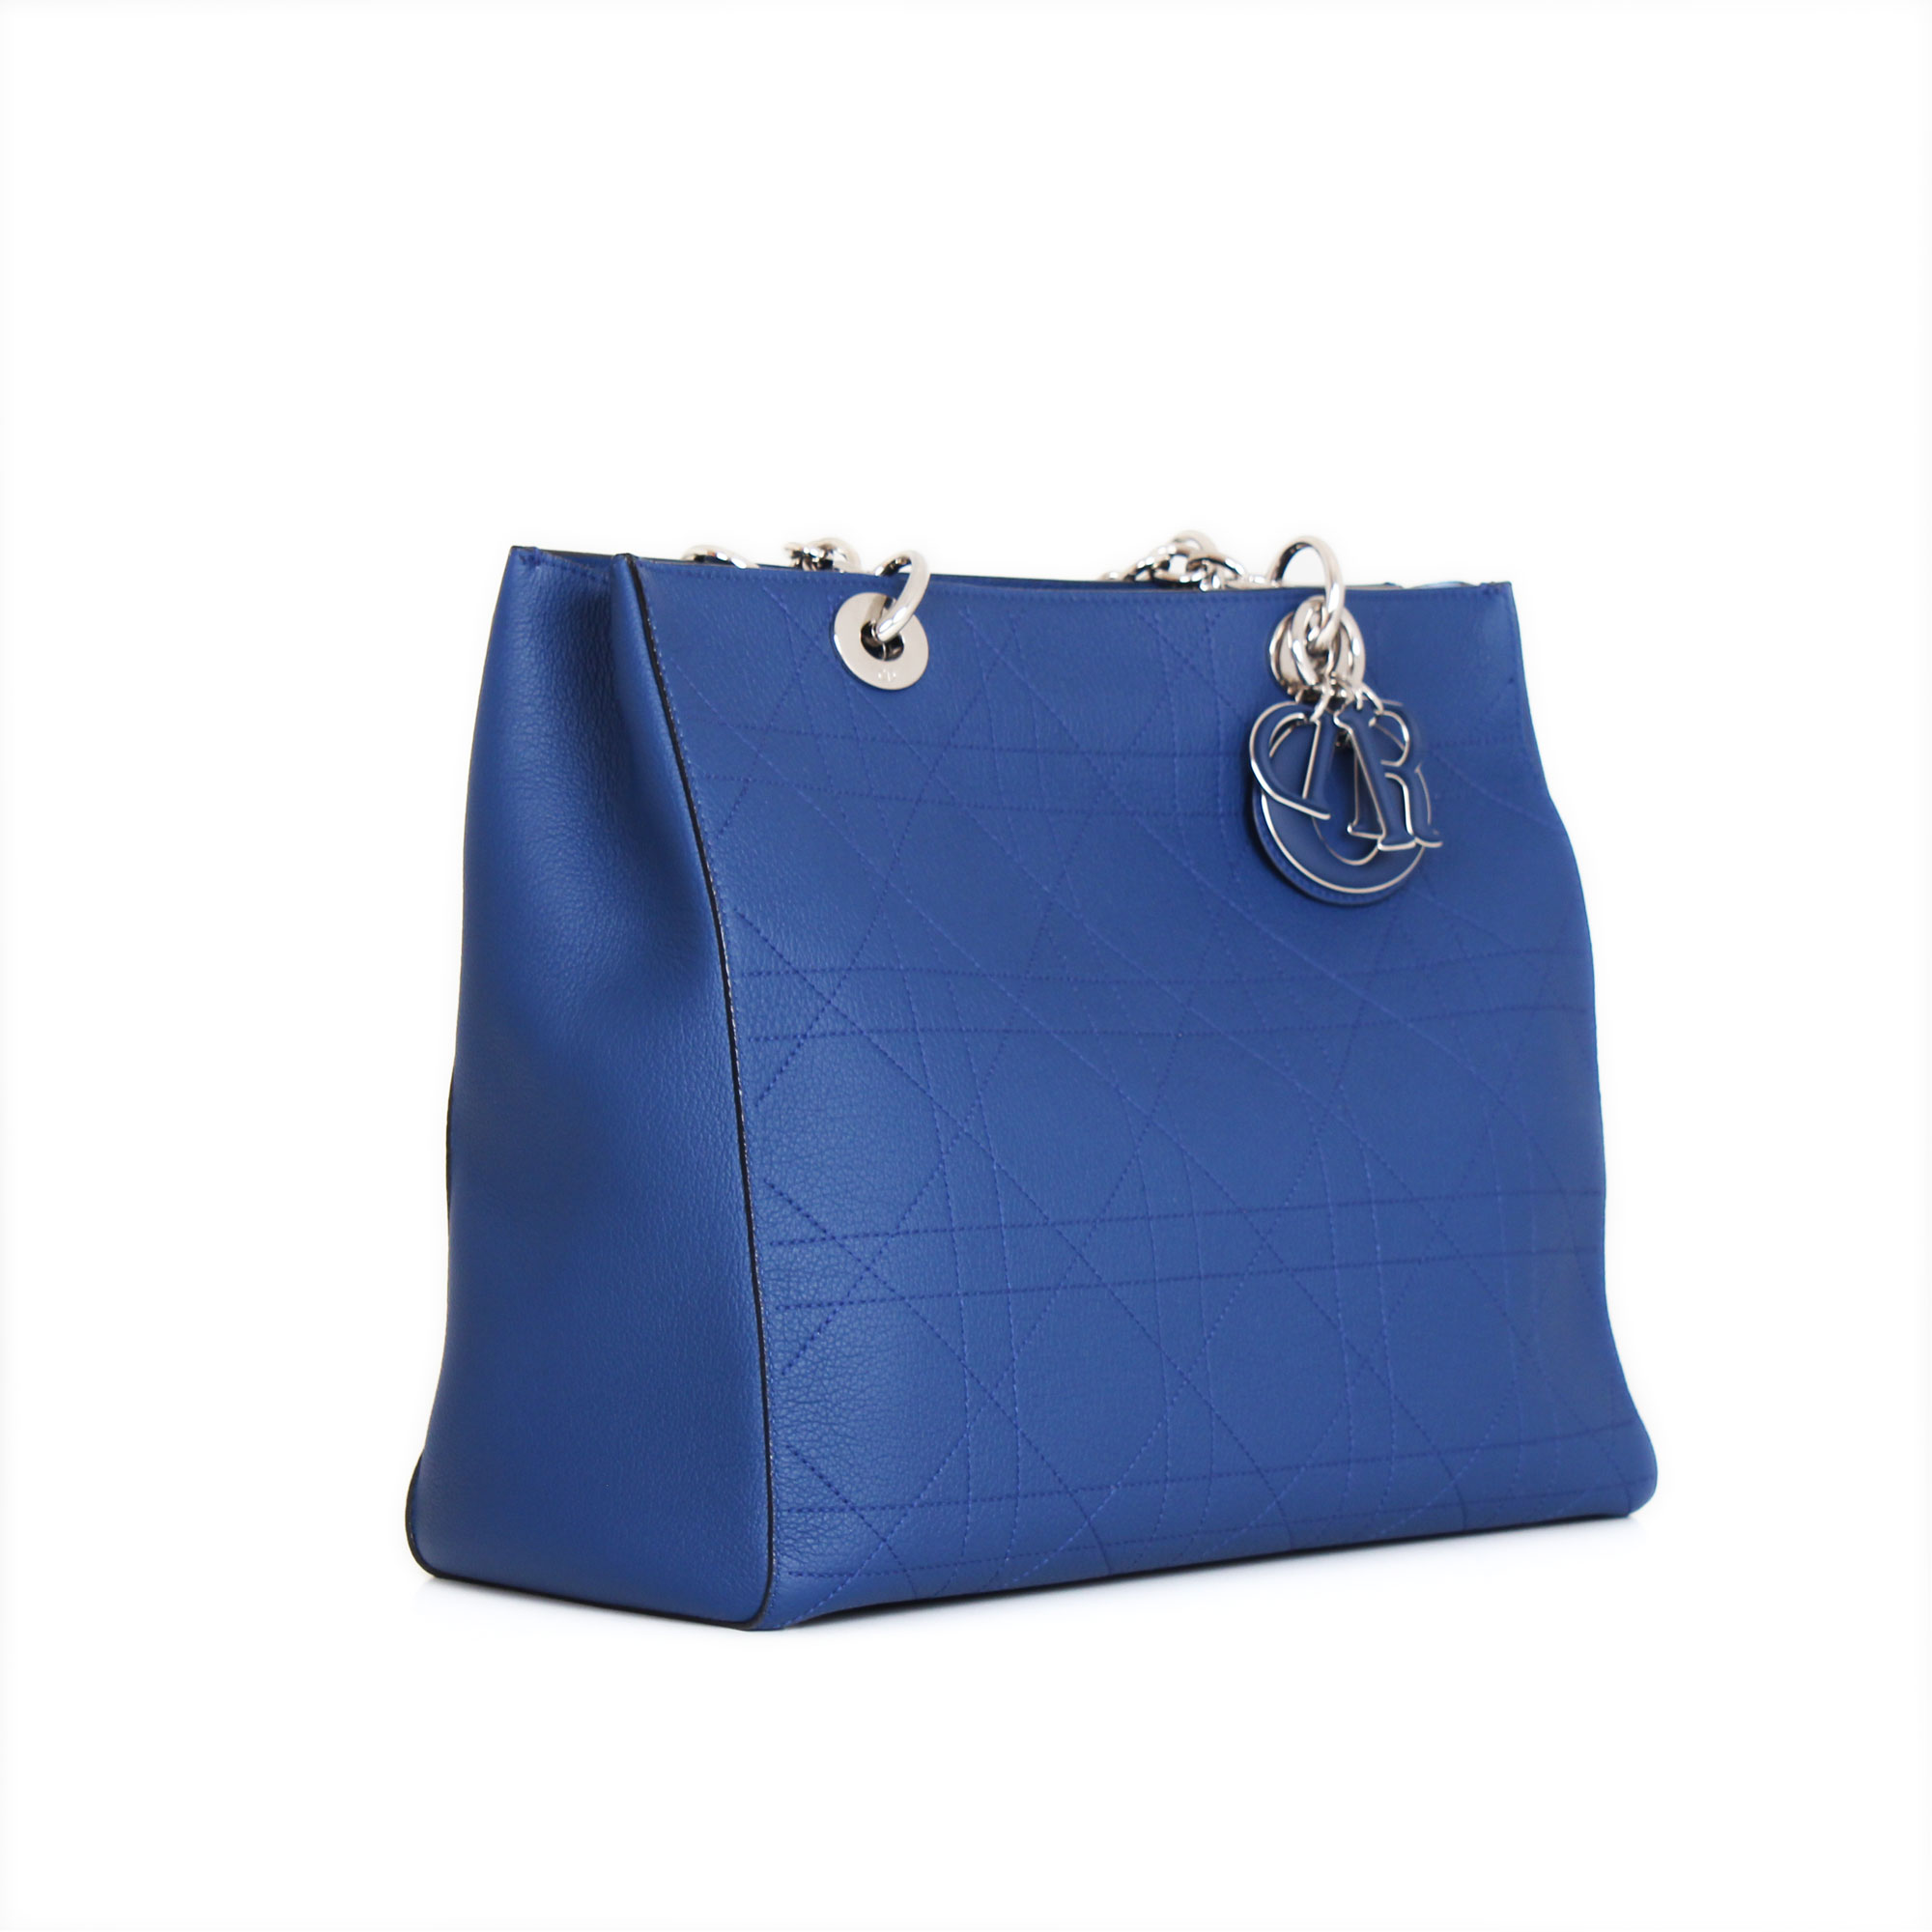 Dior UltraDior Blue Pebbled Leather Bag  cec1c68445acb